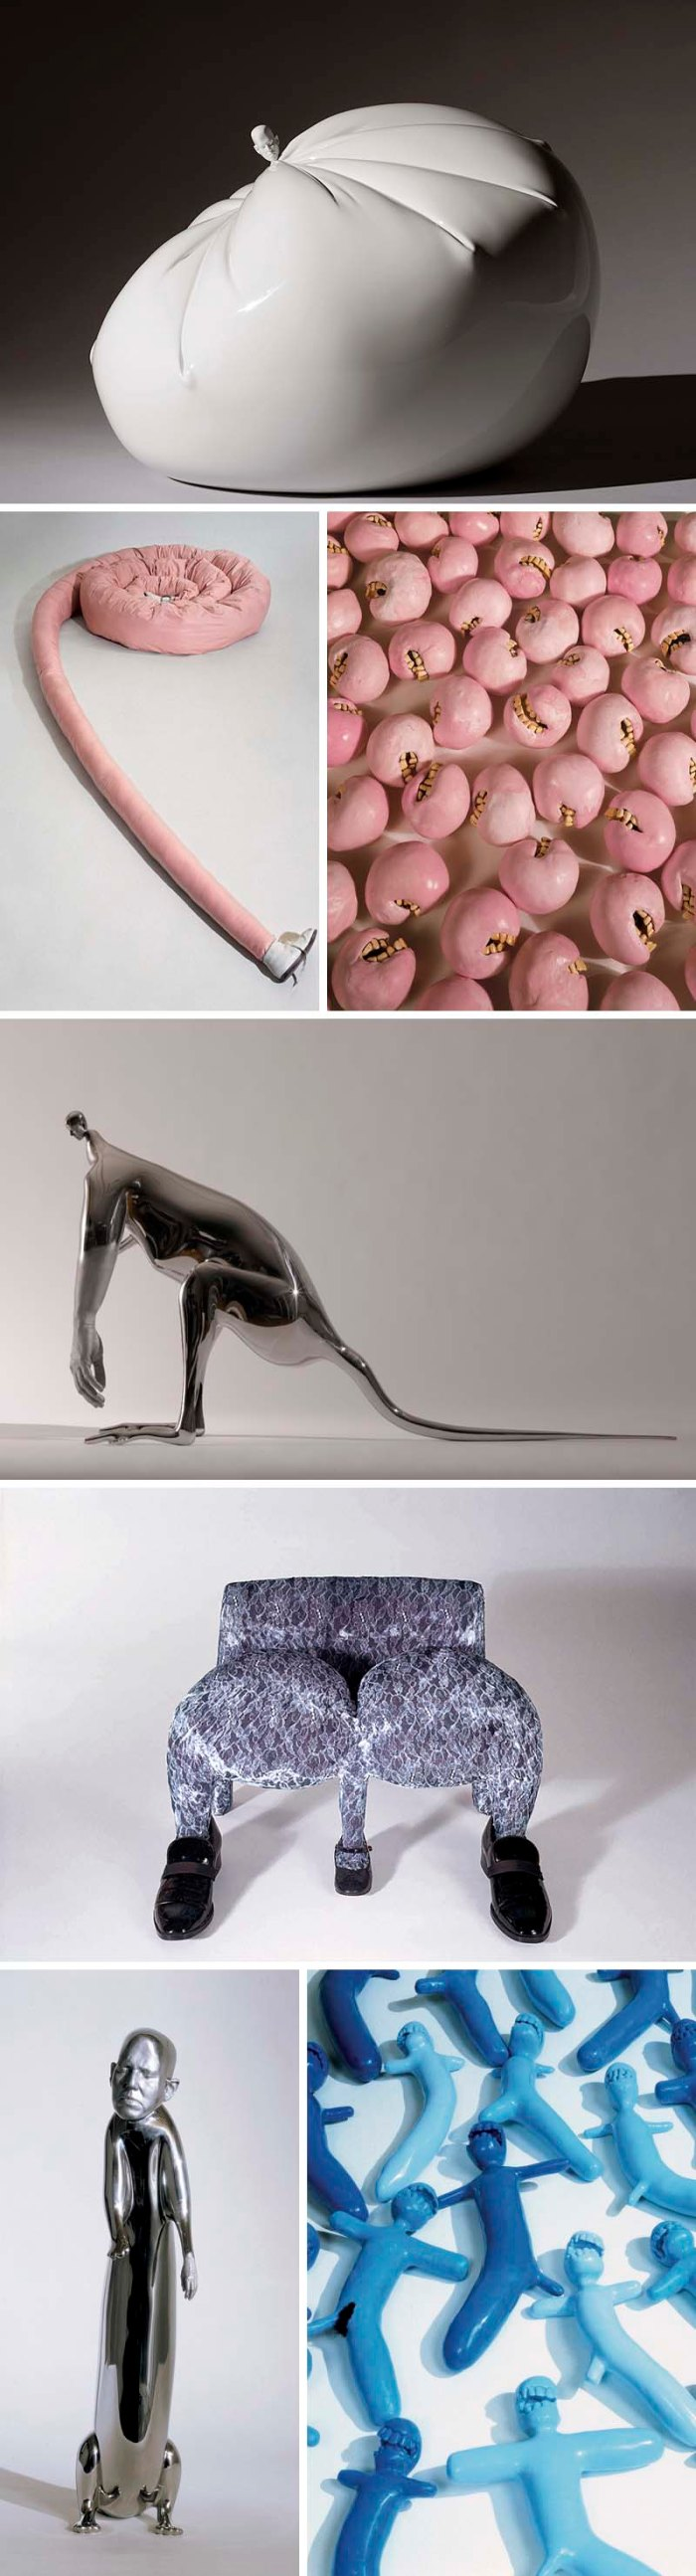 Rona Pondick, Hybrids, sculpture, bizarre art, teeth, humorous art